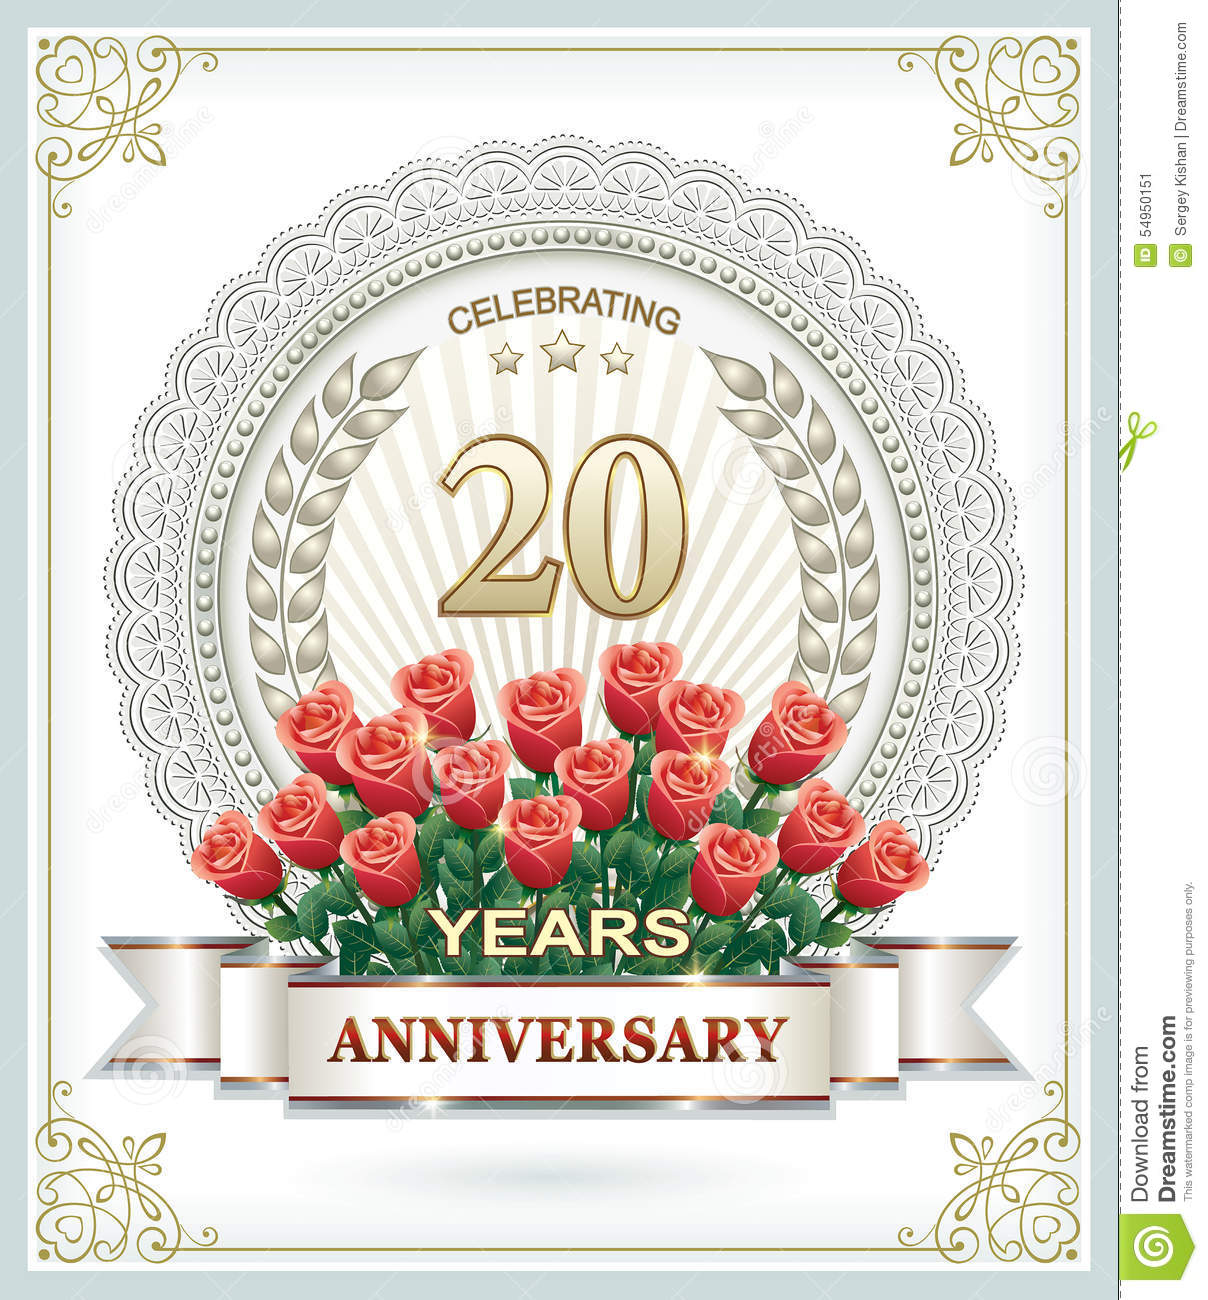 joyeux anniversaire 20 ans avec des roses illustration de vecteur image 54950151. Black Bedroom Furniture Sets. Home Design Ideas